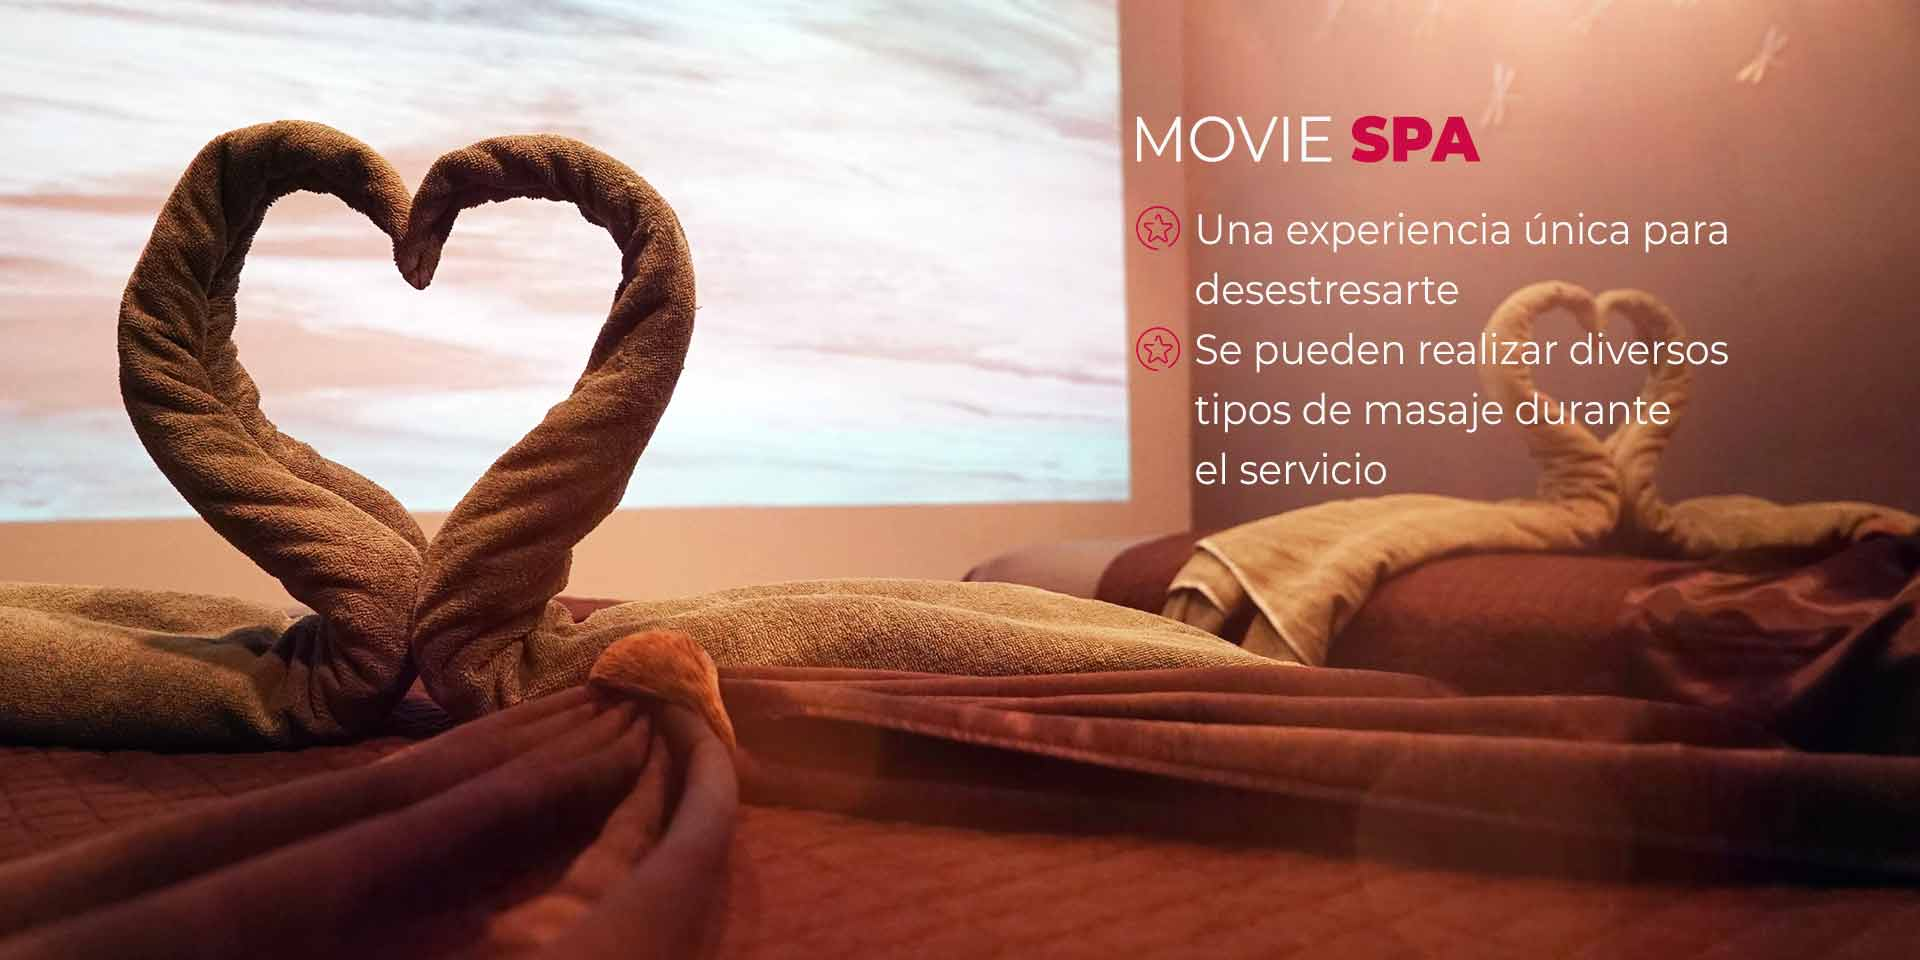 Movie Spa en CDMX